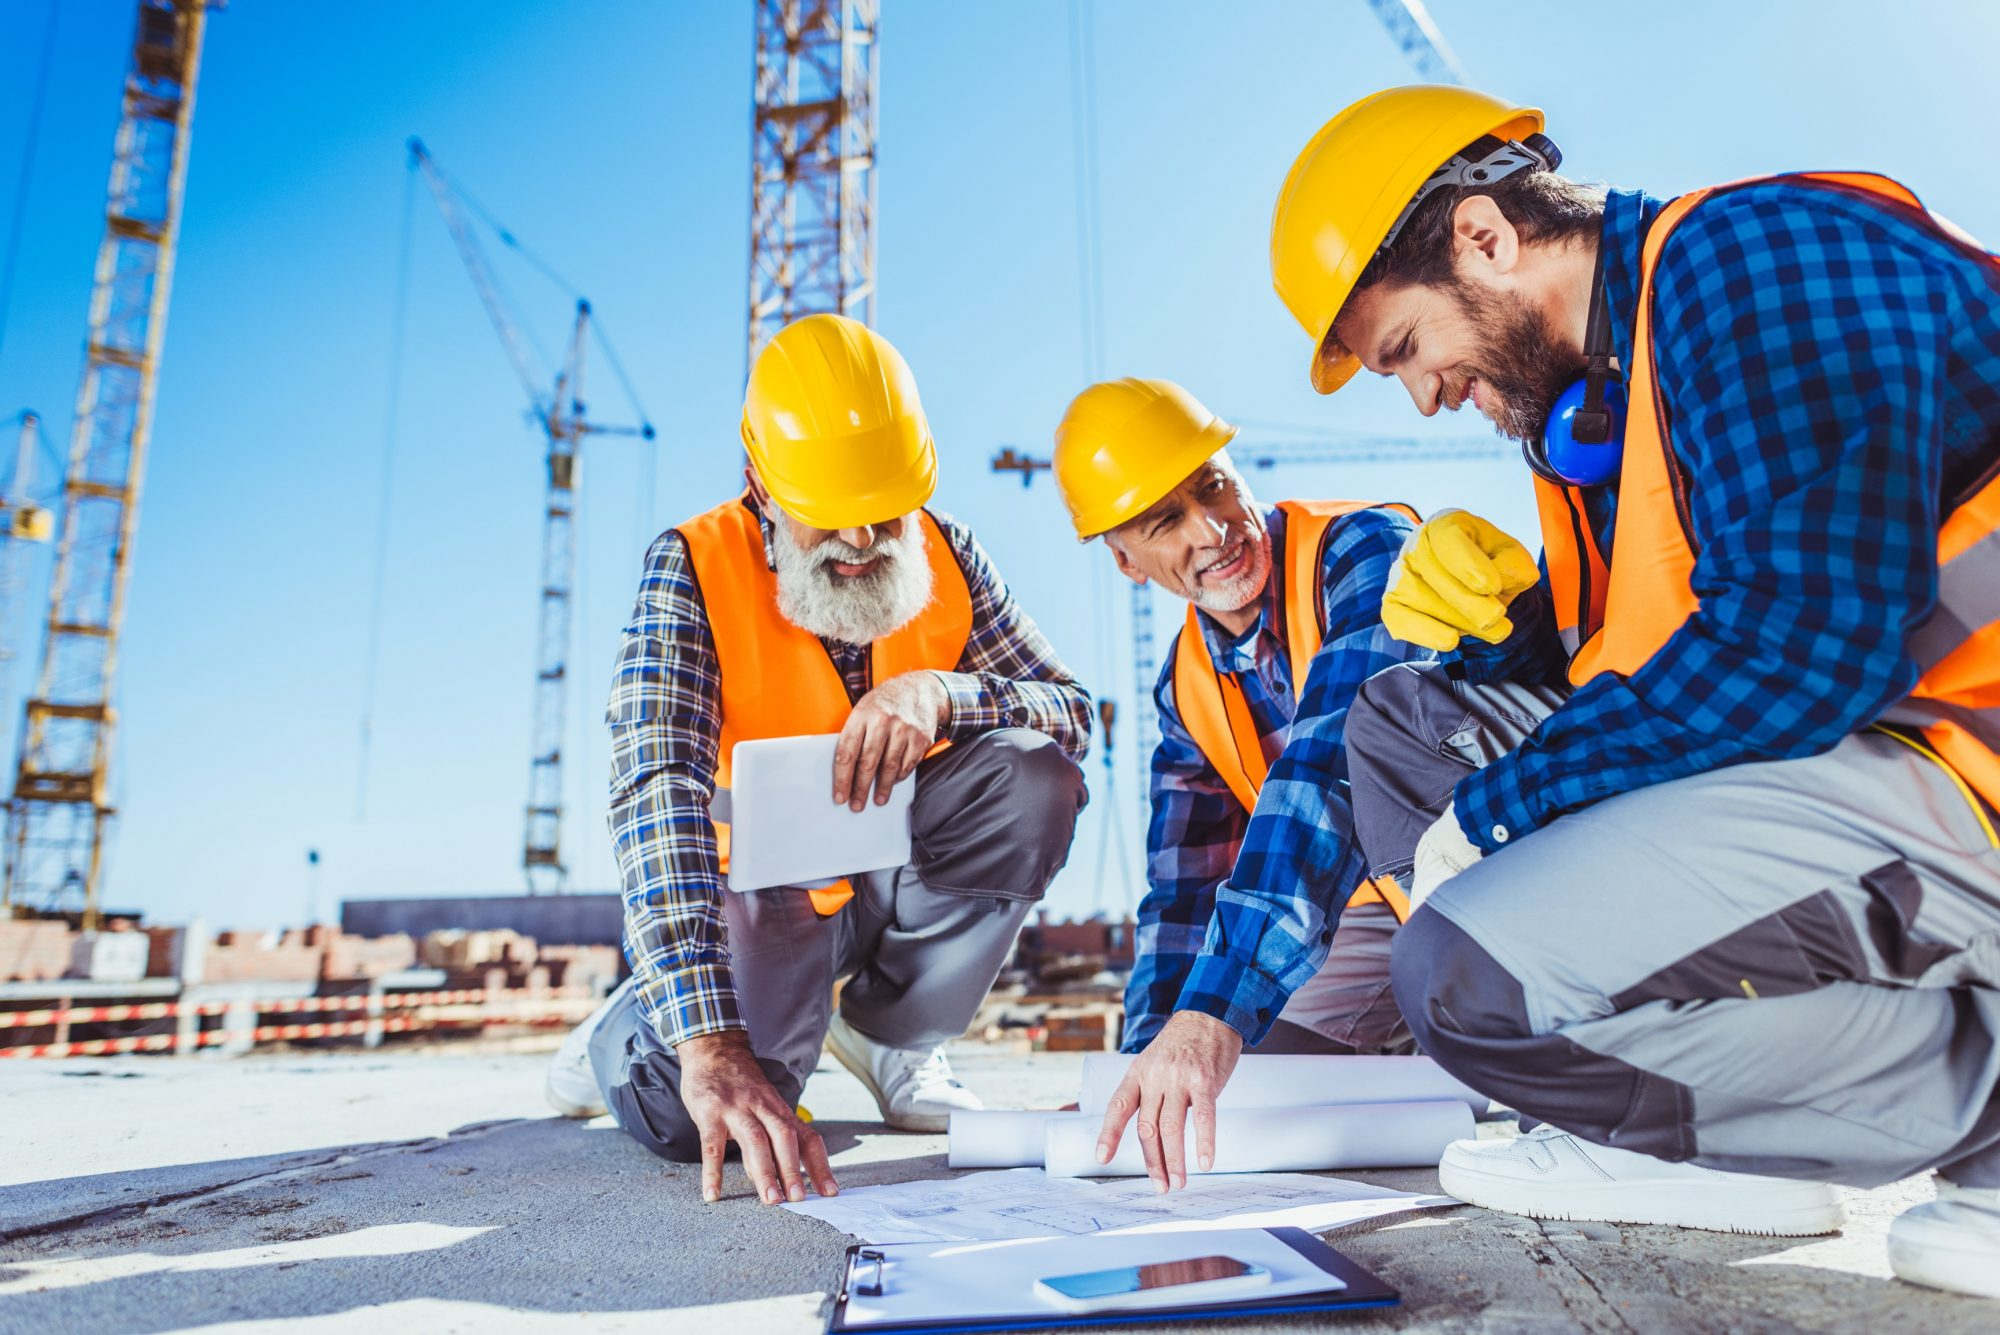 How To Run An Estimating Service For Construction takeoff Services